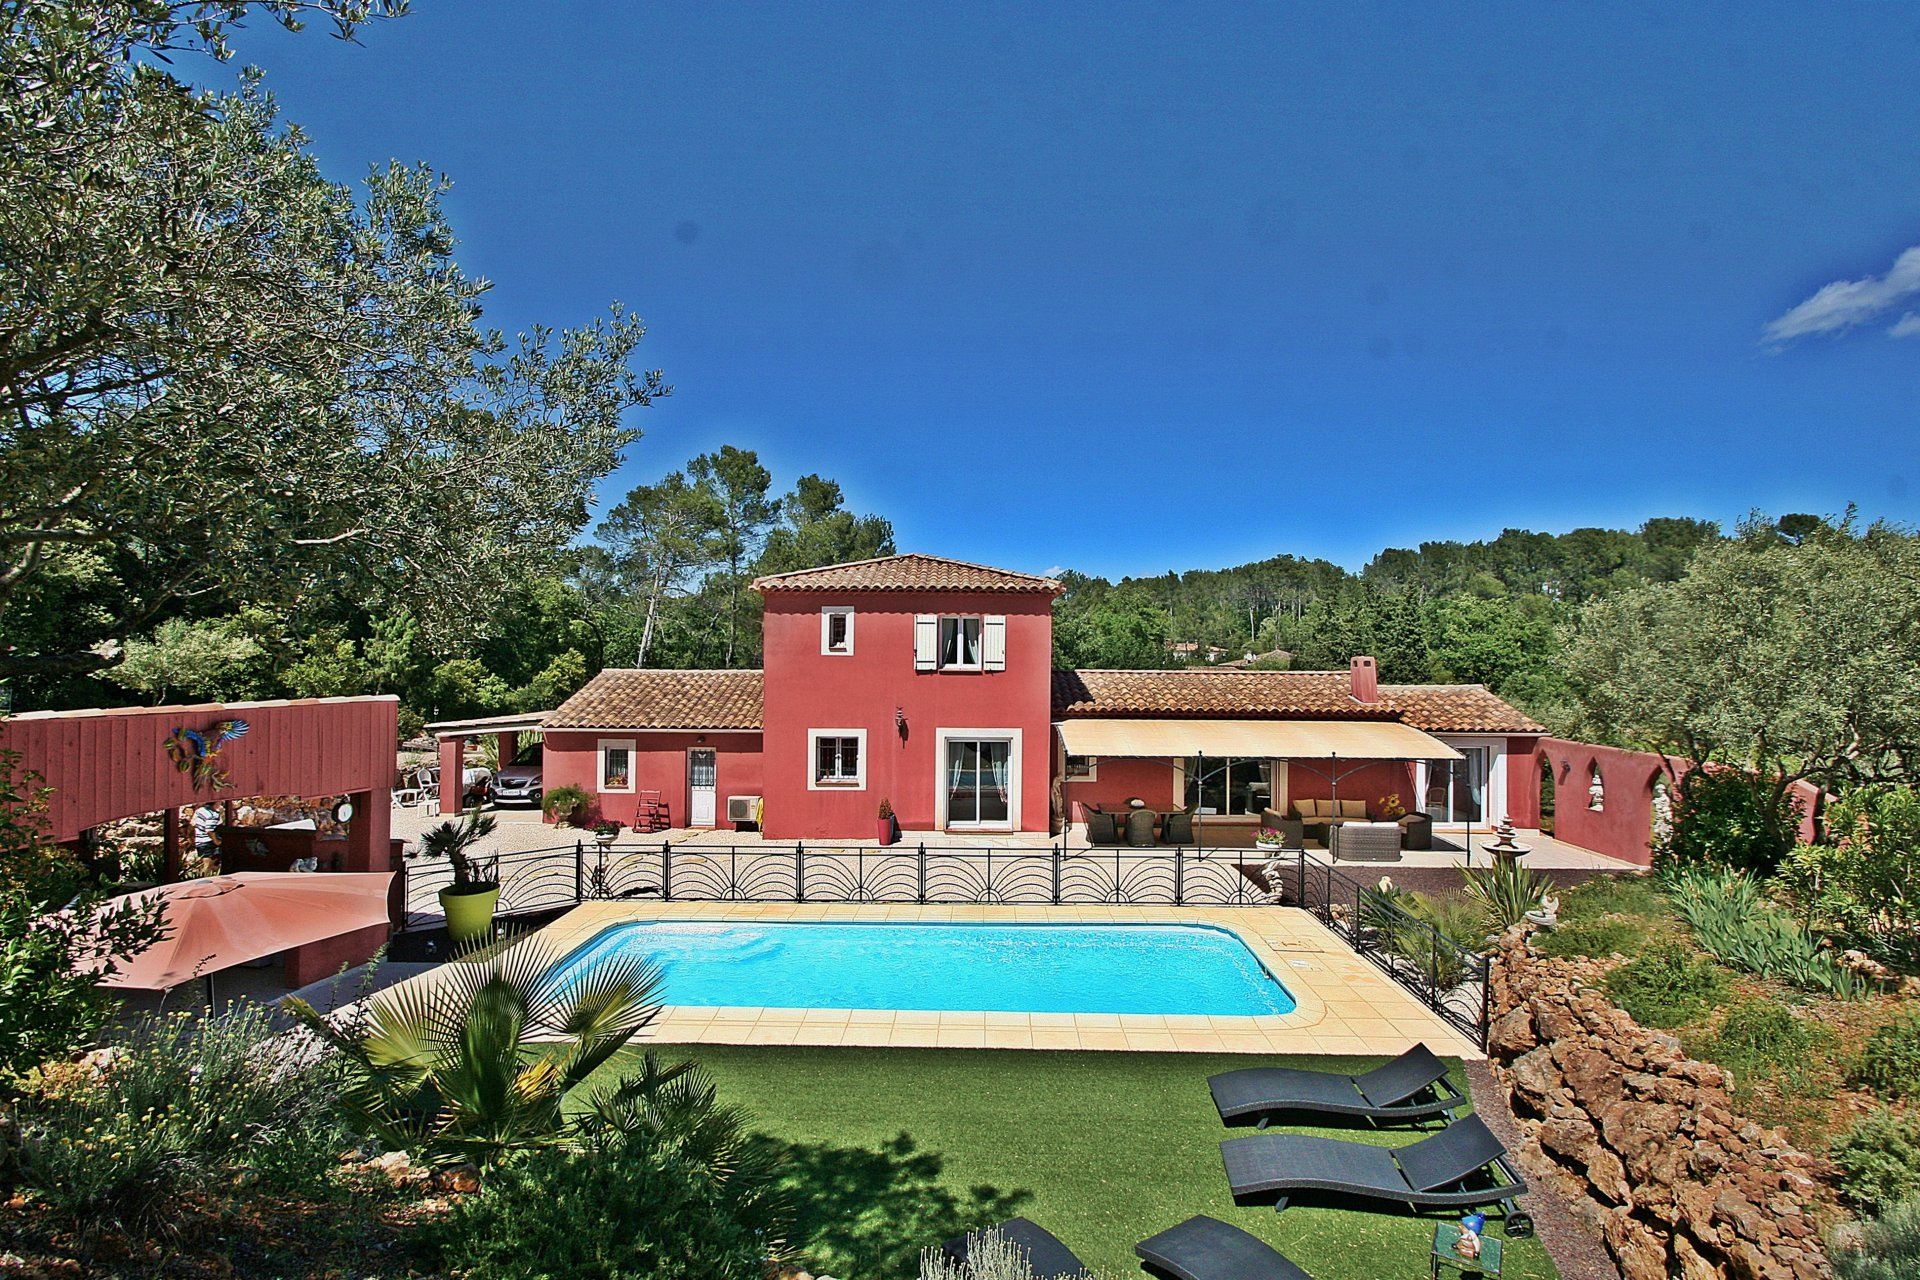 Beautiful villa with swimming pool on 4337m² of land